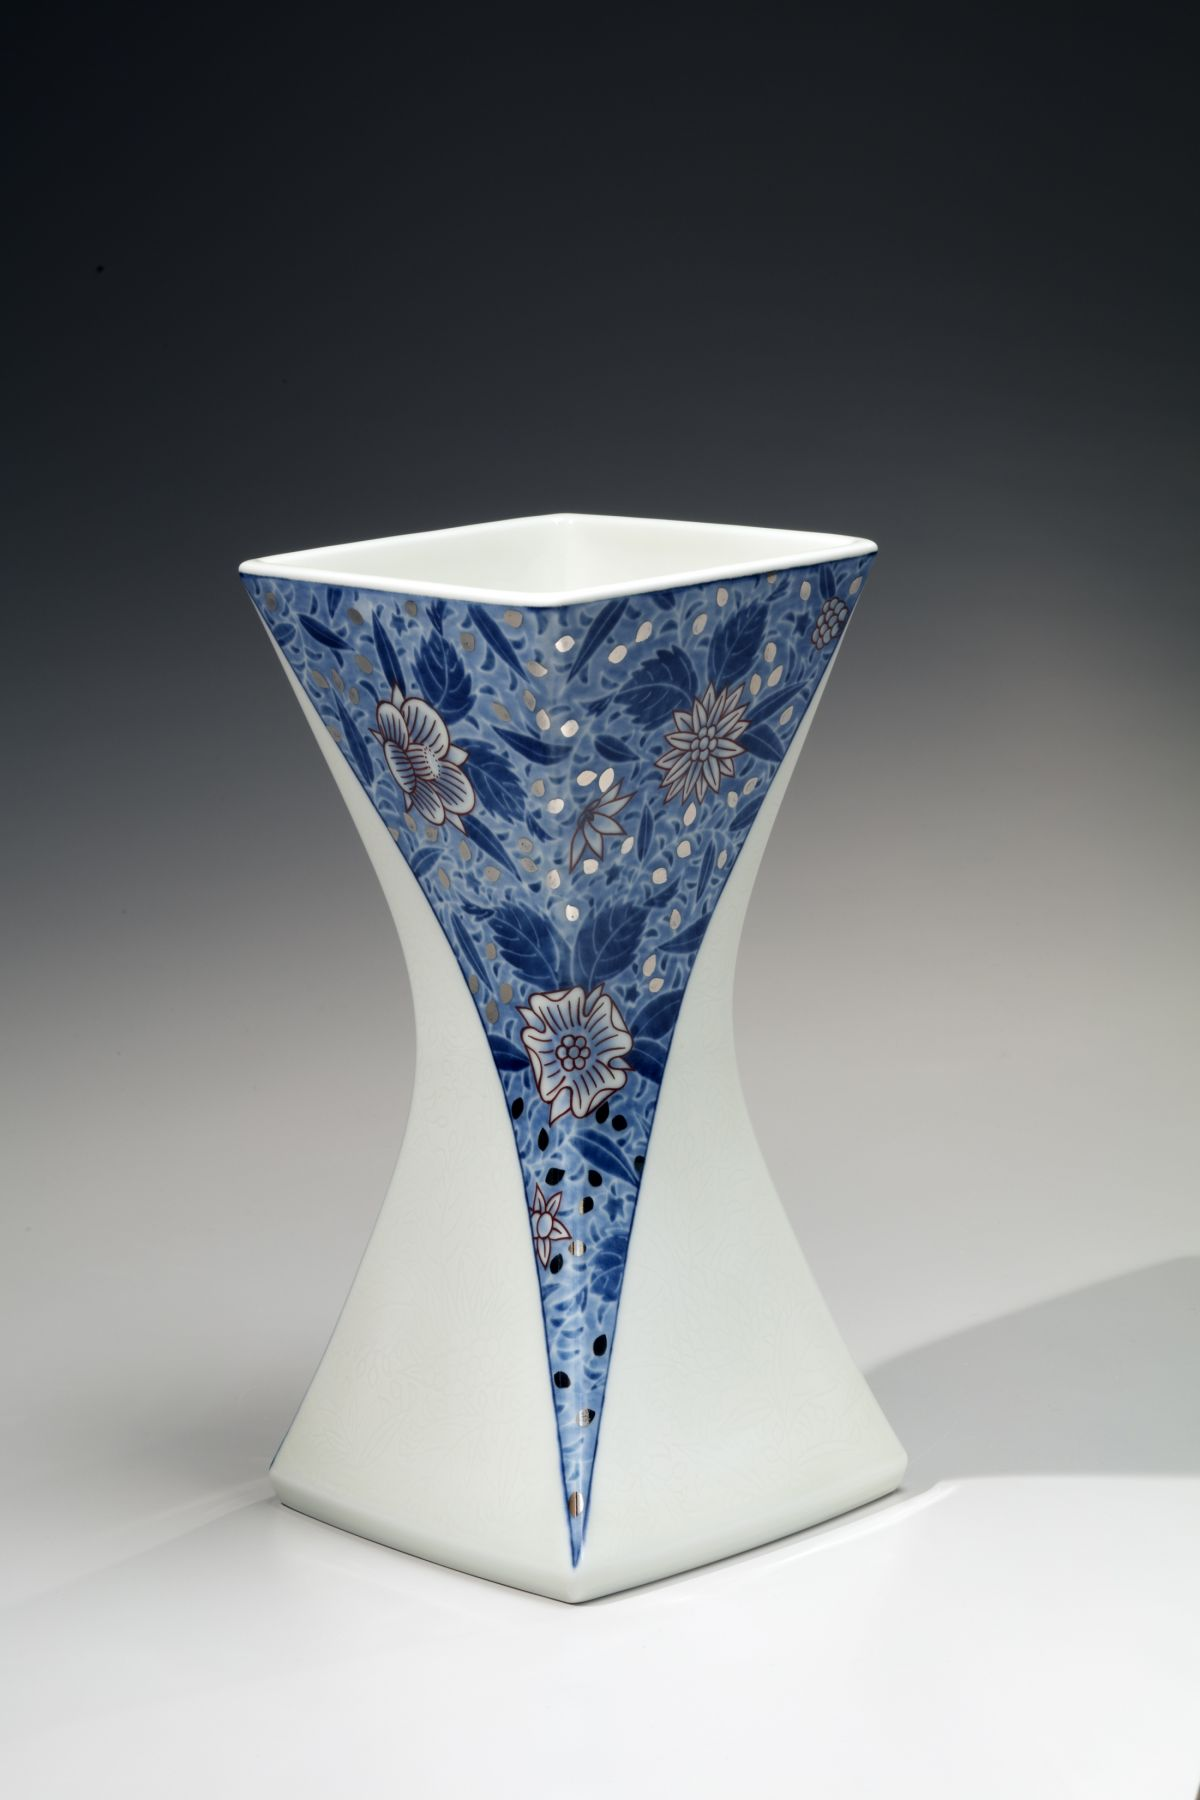 Imaizumi Imaemon XIV (b. 1958), Vase with Flowers in Chintz Patterning